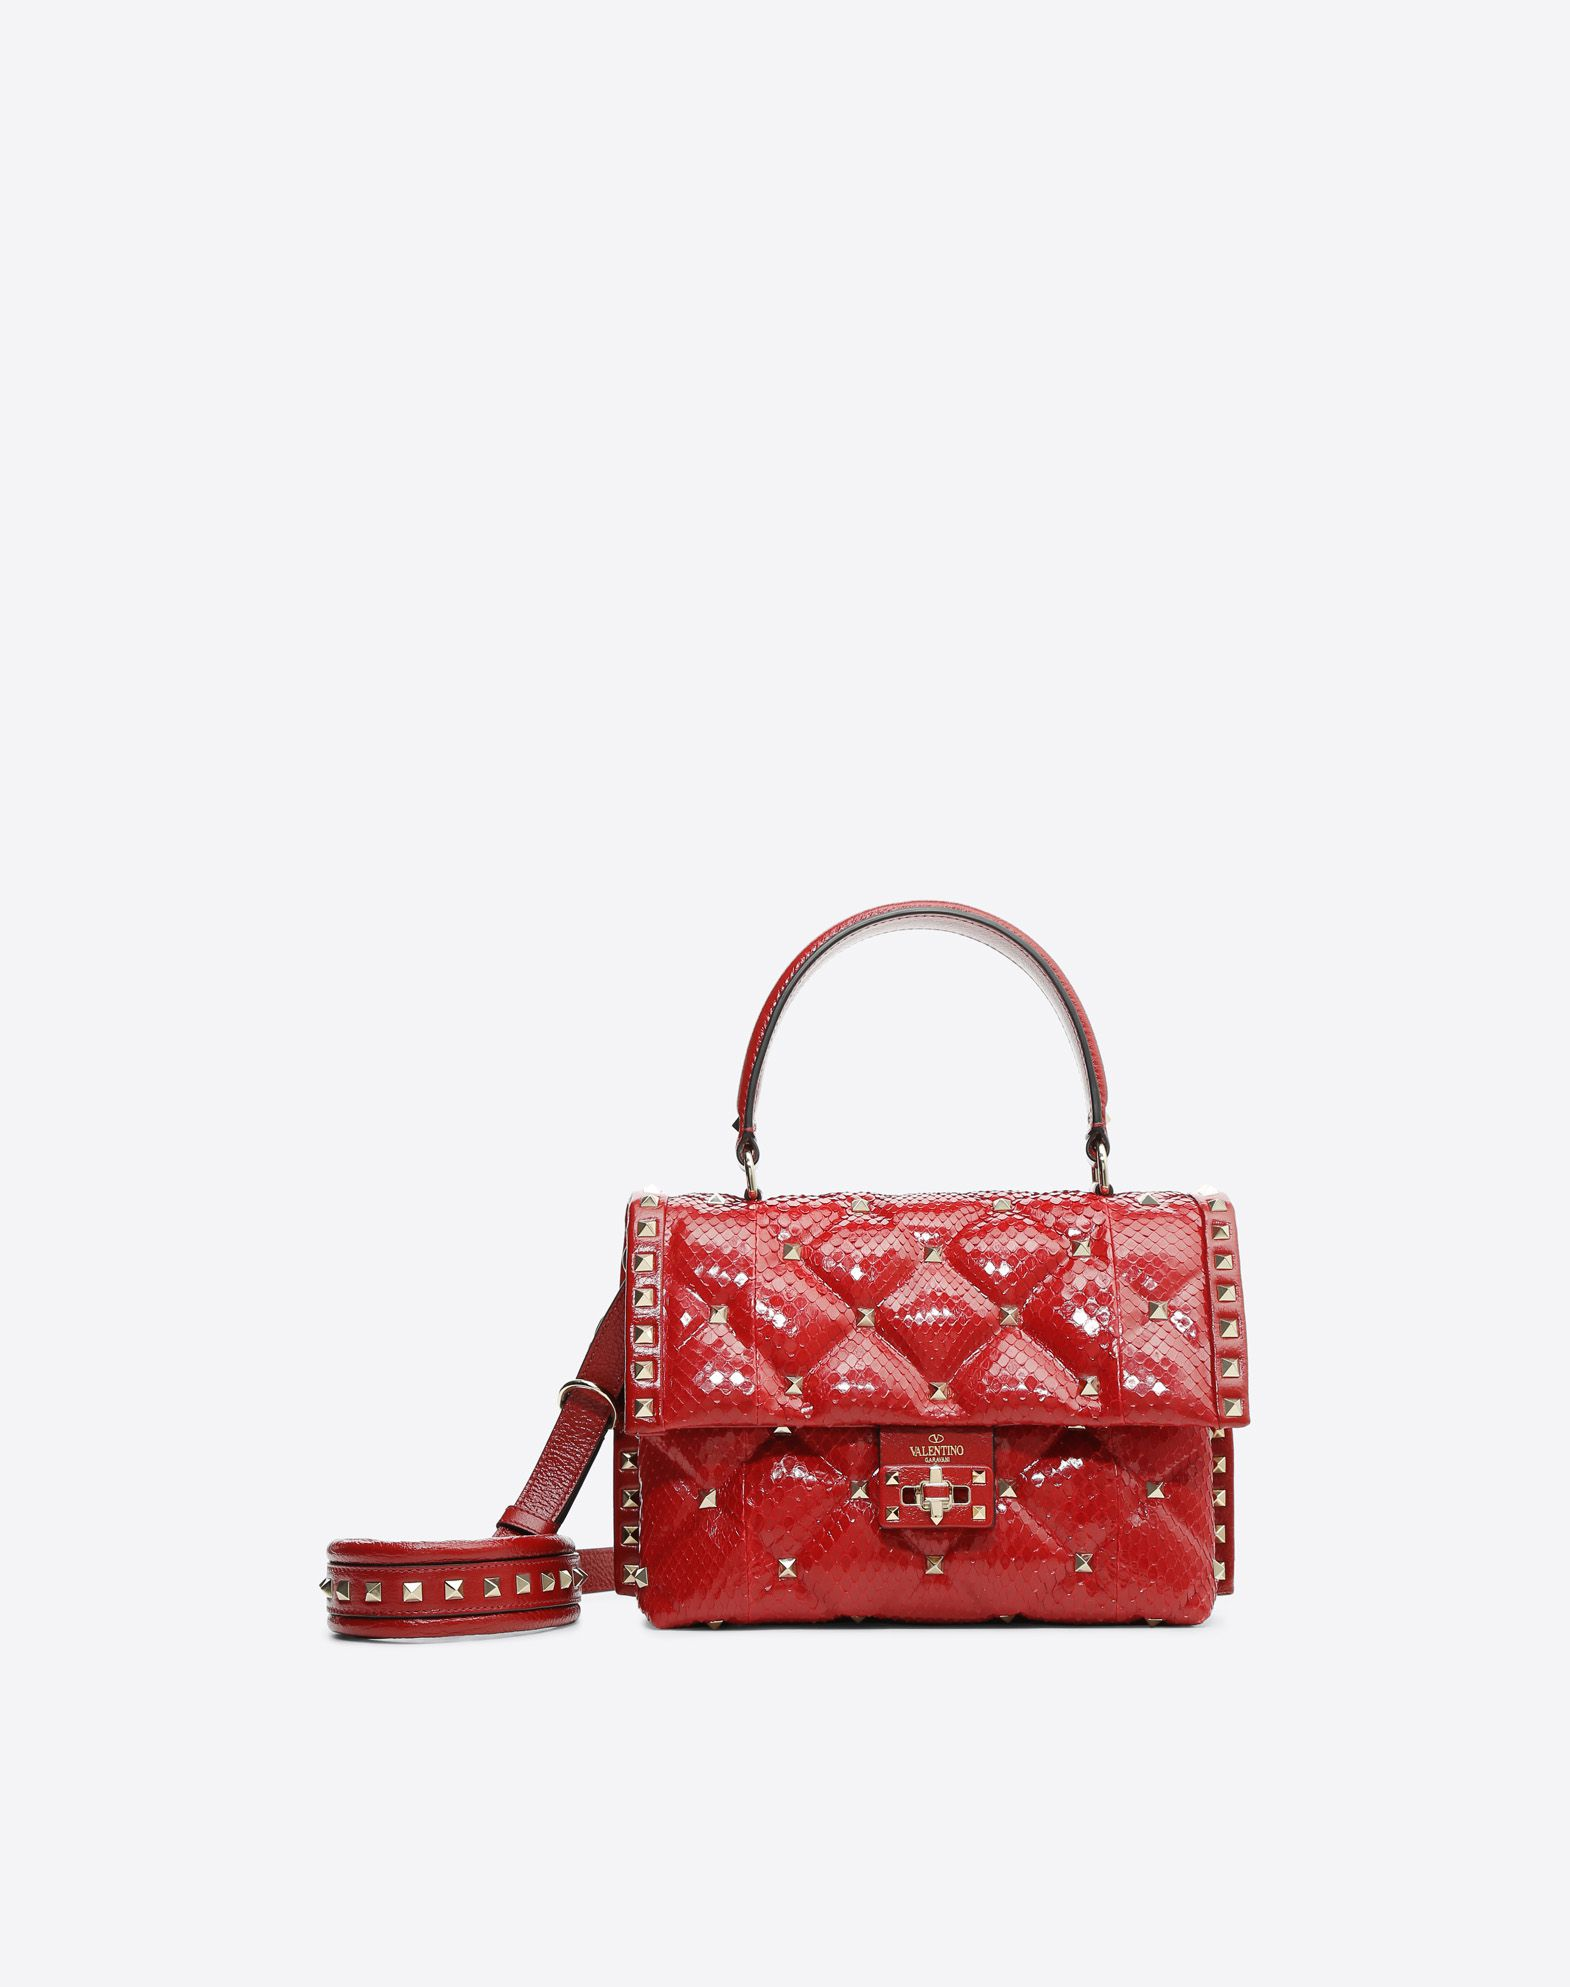 VALENTINO In boutique only 45410654ka